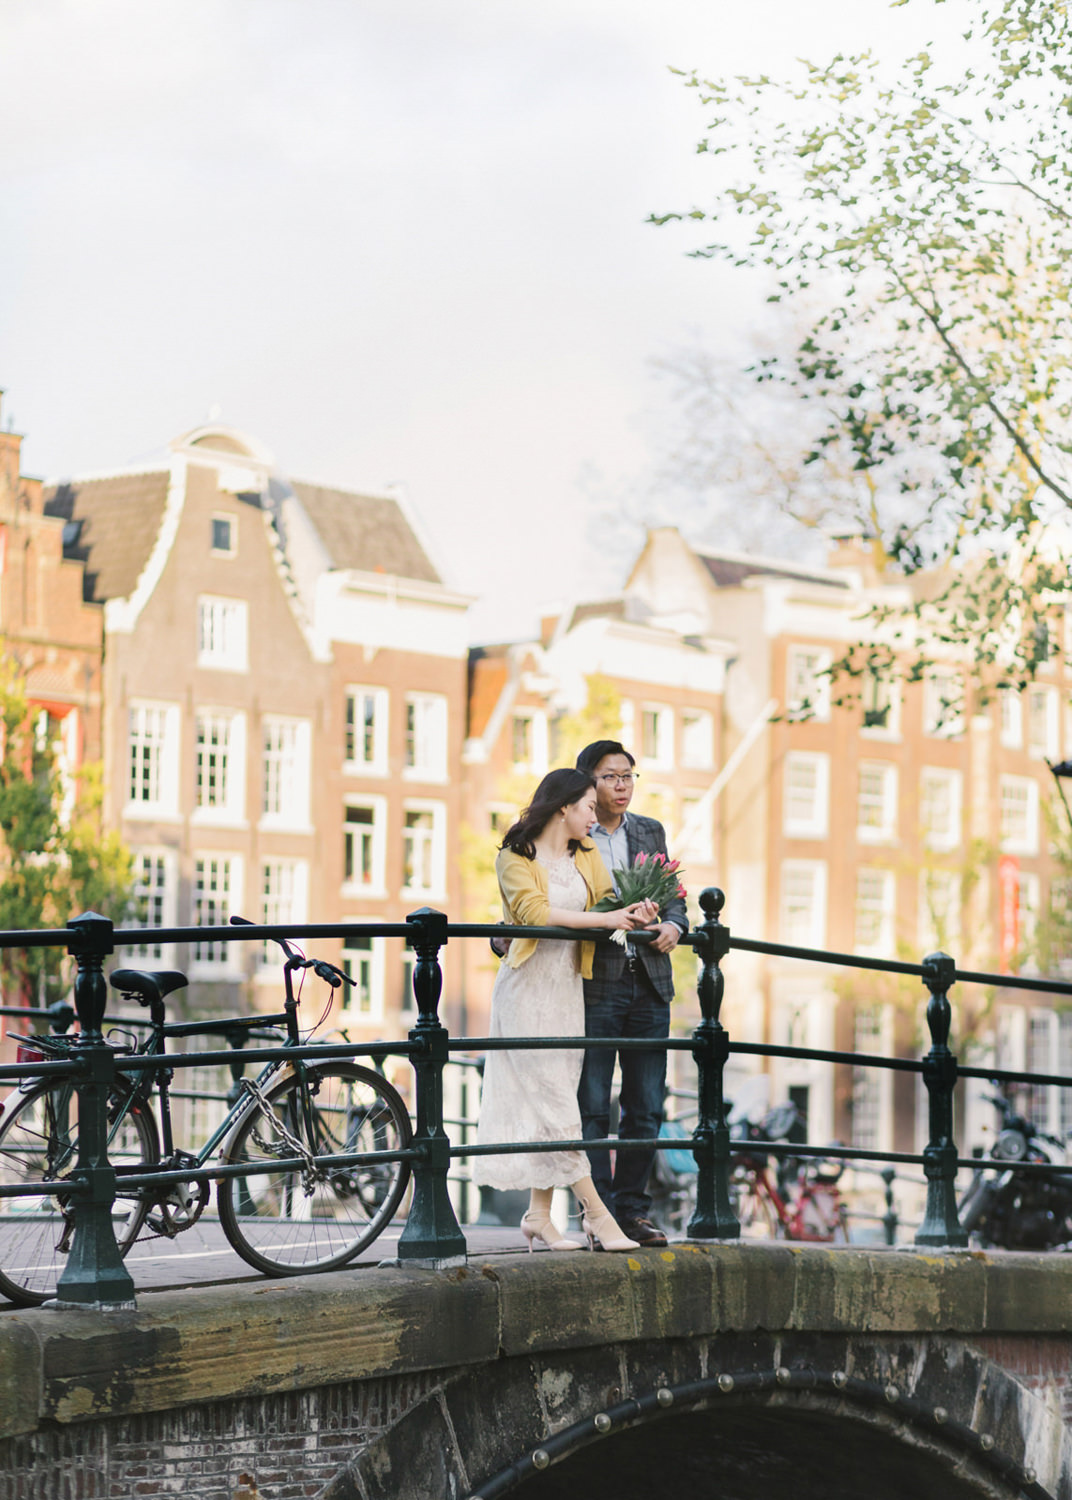 Best Amsterdam Engagement Portrait Photographer - CHYMO & MORE P